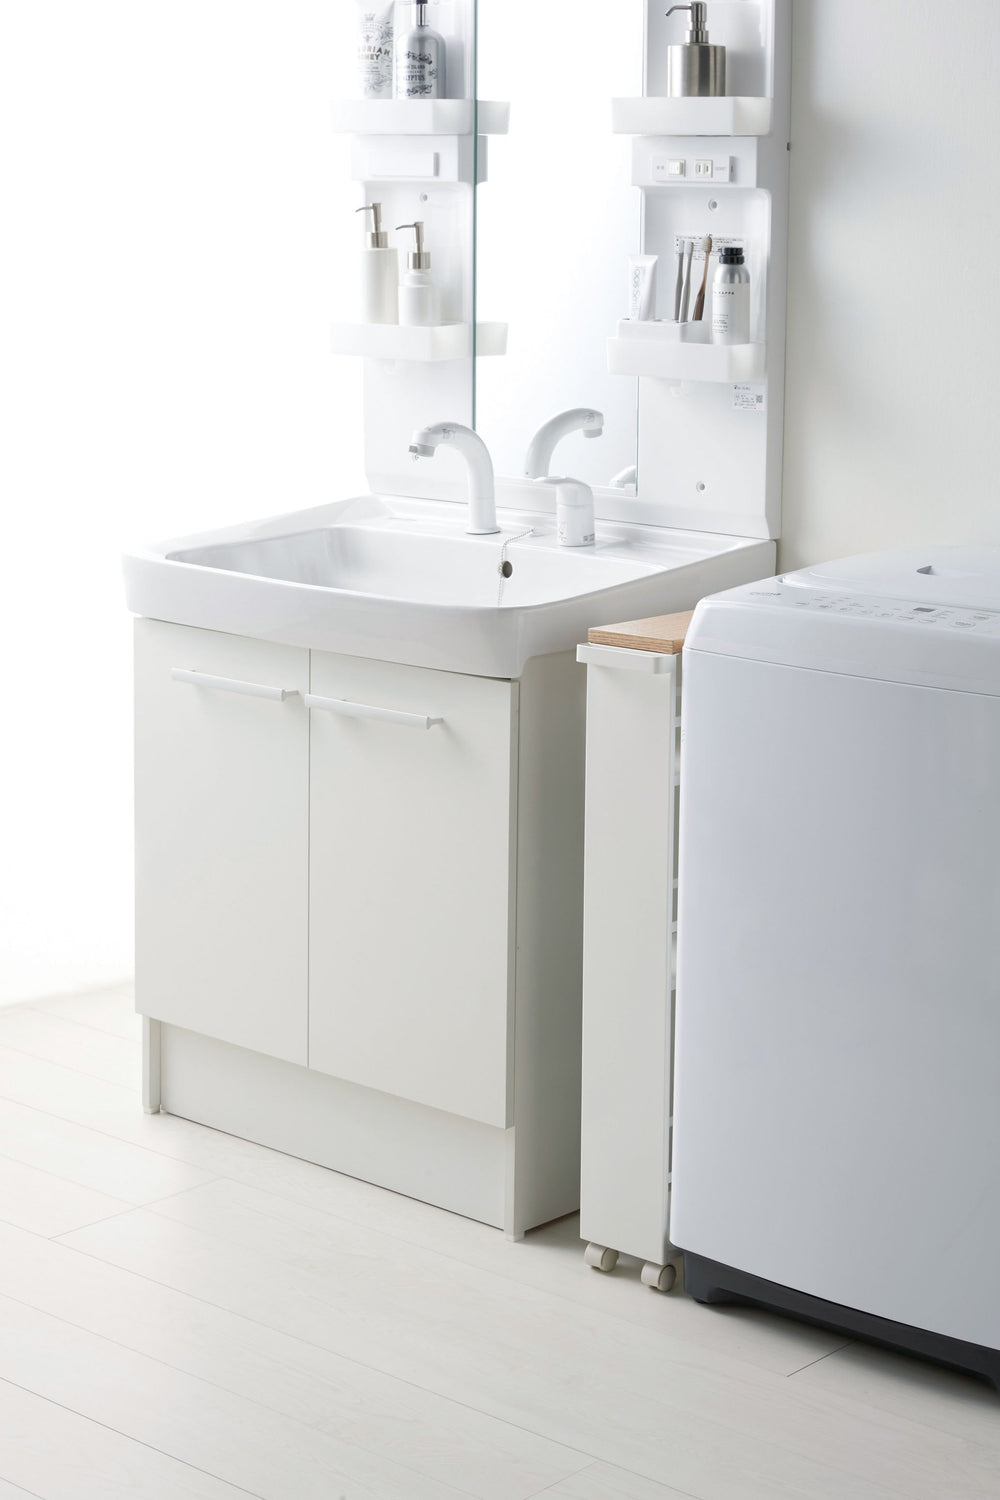 Yamazaki Rolling Storage Cart tucked into a slim space between the bathroom vanity and an appliance